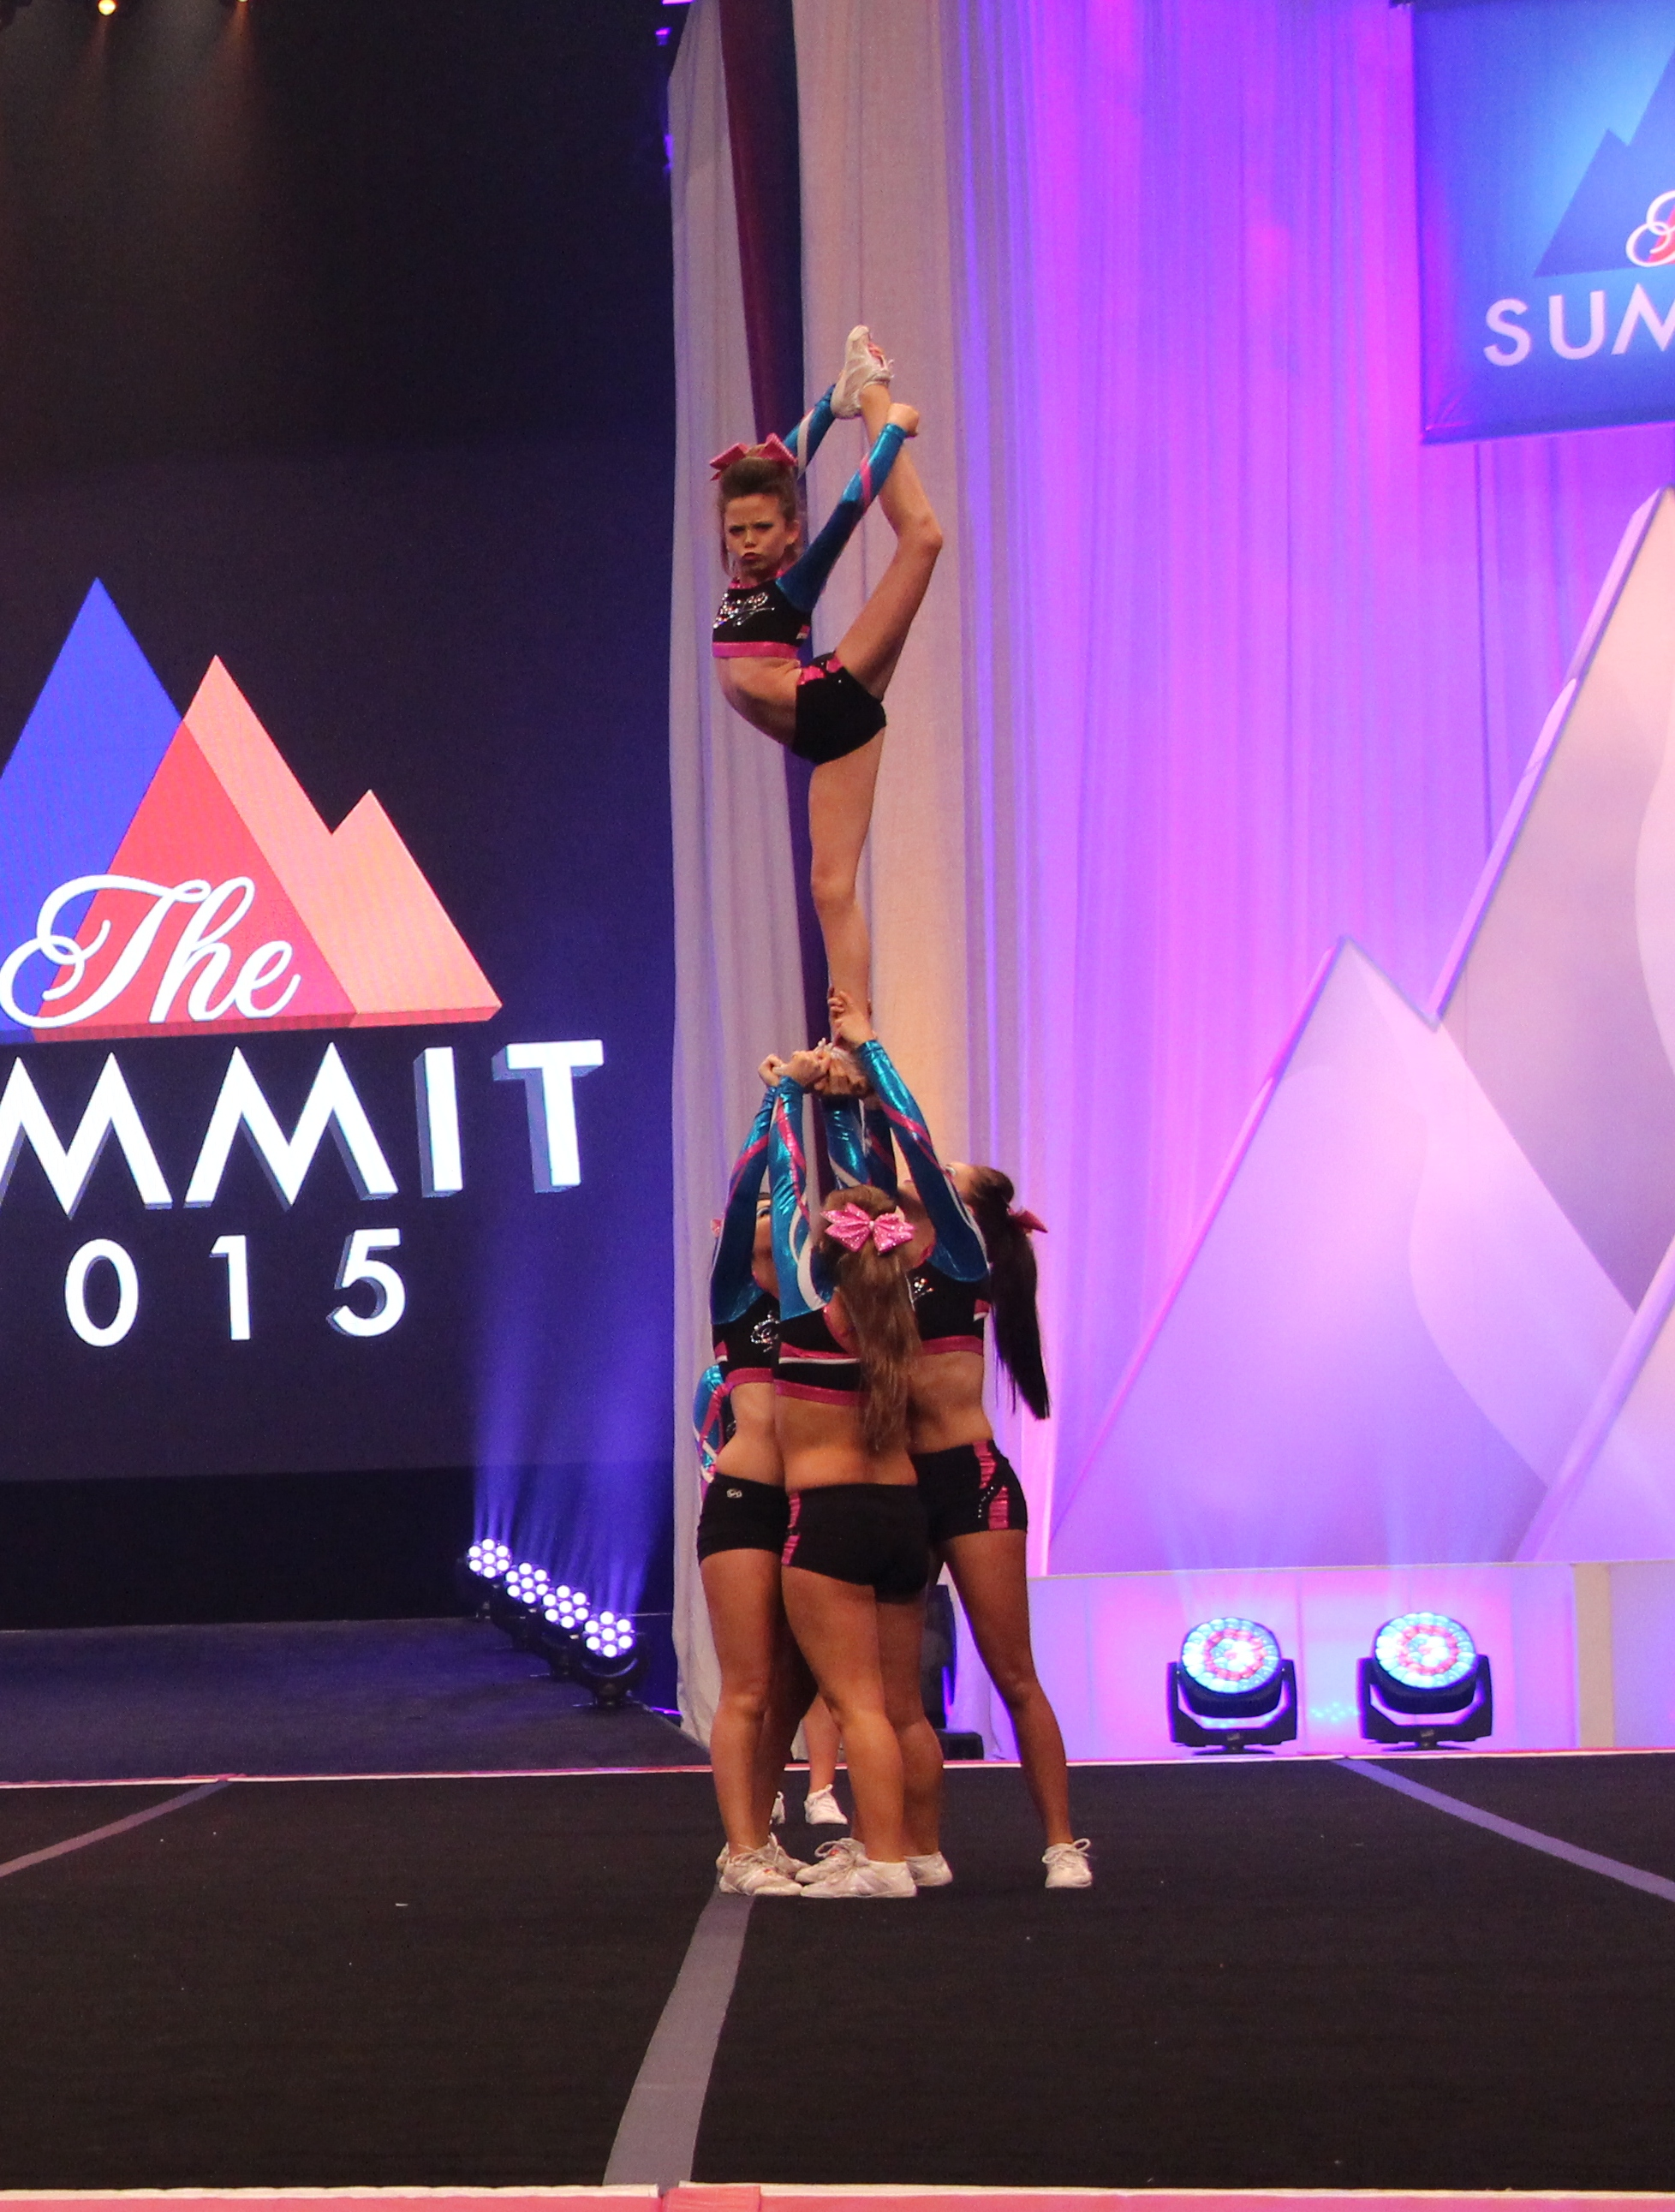 SUMMIT SCORP